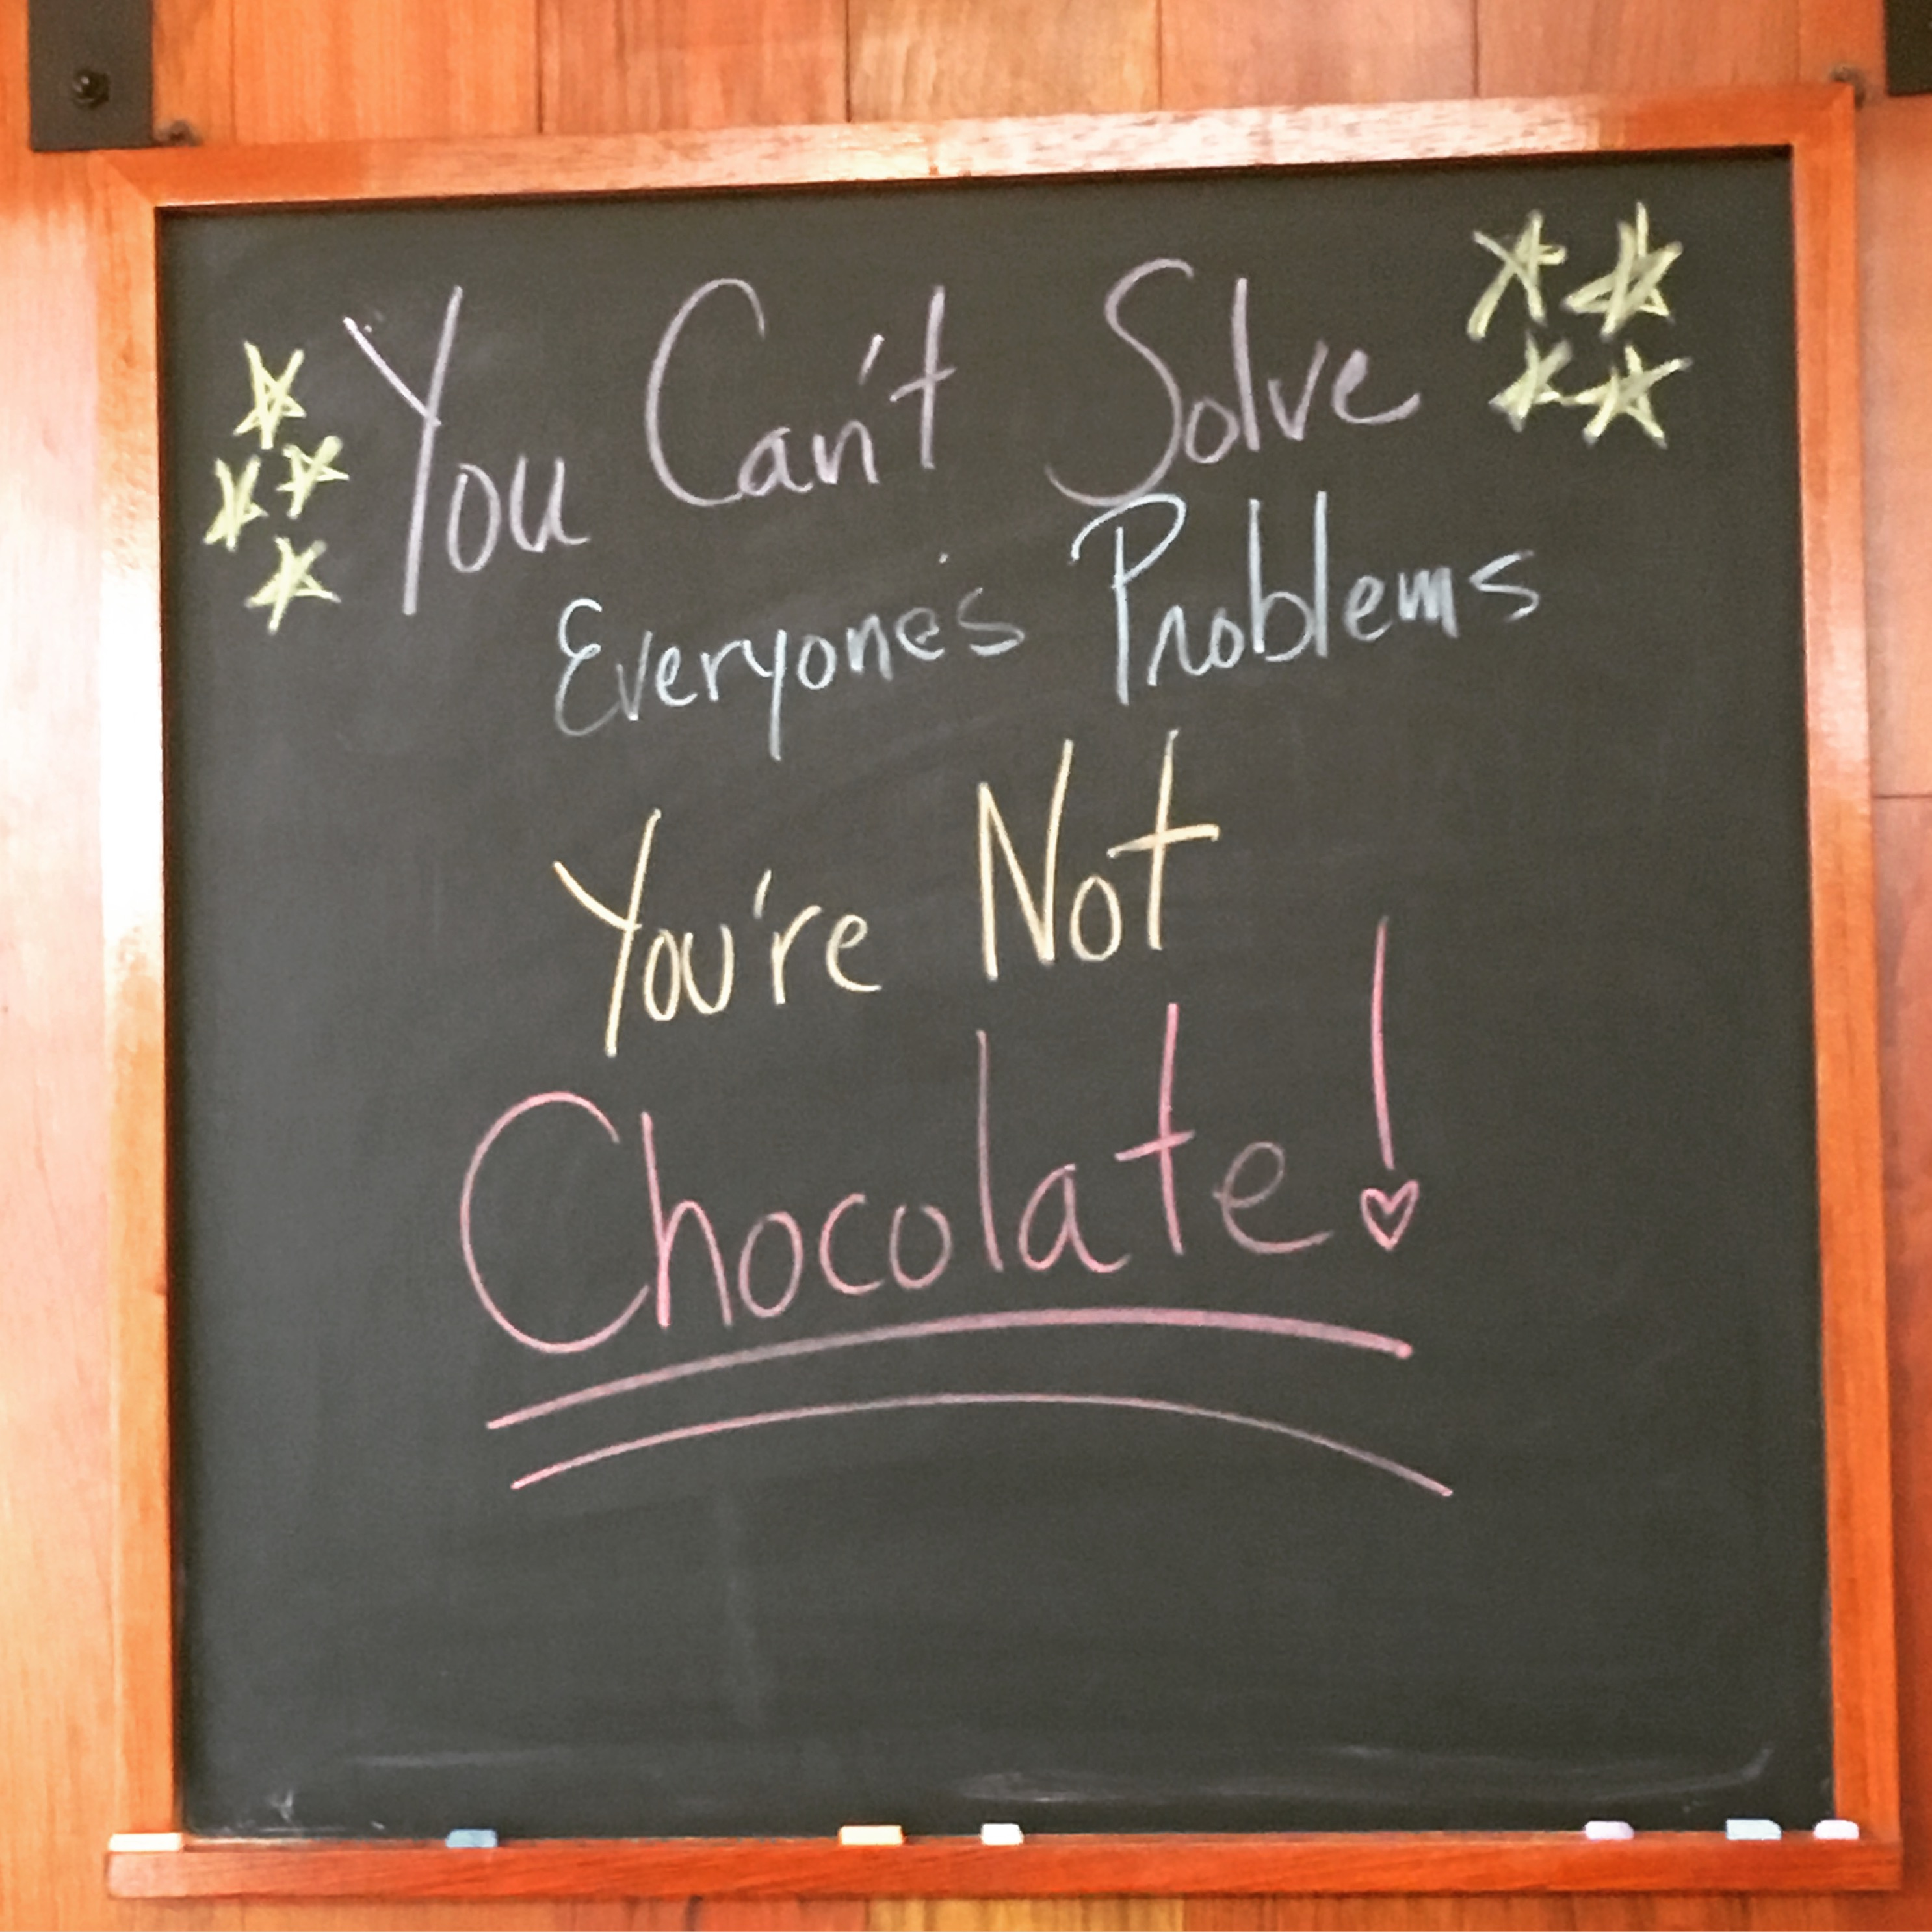 Chocolate Tour of NYC!  A new perspective on touring